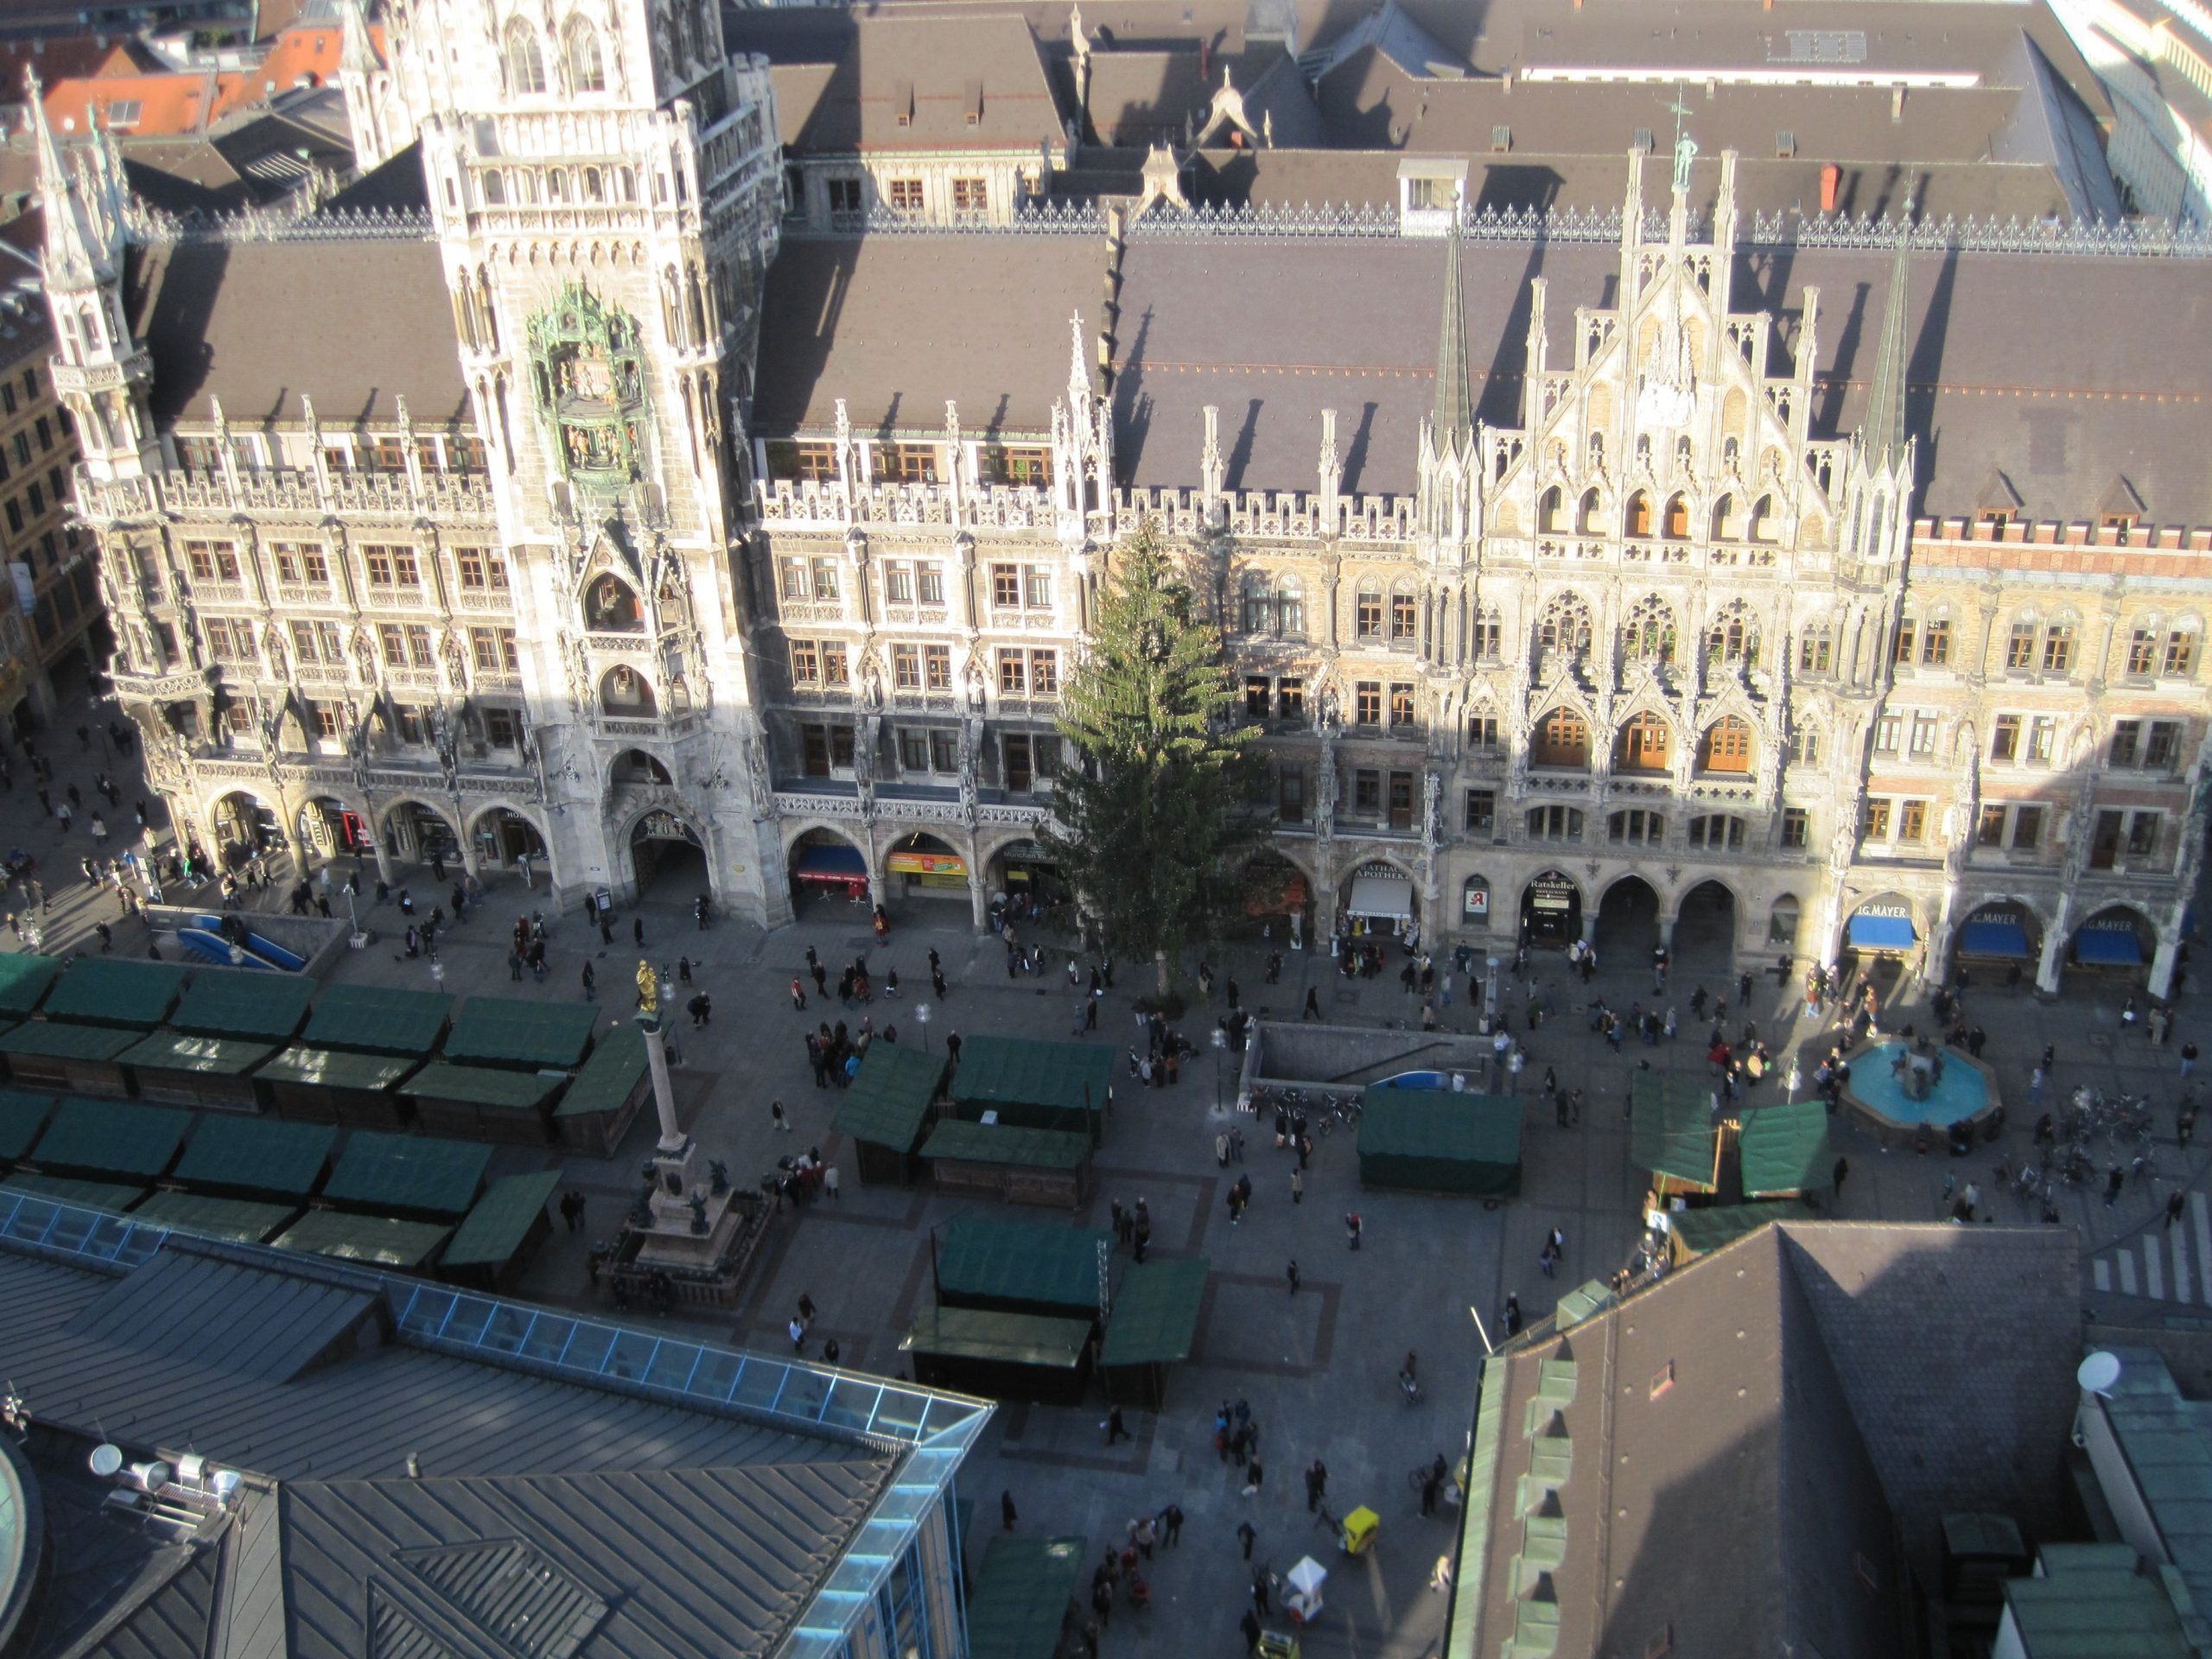 Looking down on the Marienplatz and the Neues Rathaus, viewed from the tower of St. Peterskirche (Photo courtesy of Morgan Tarpley Smith)